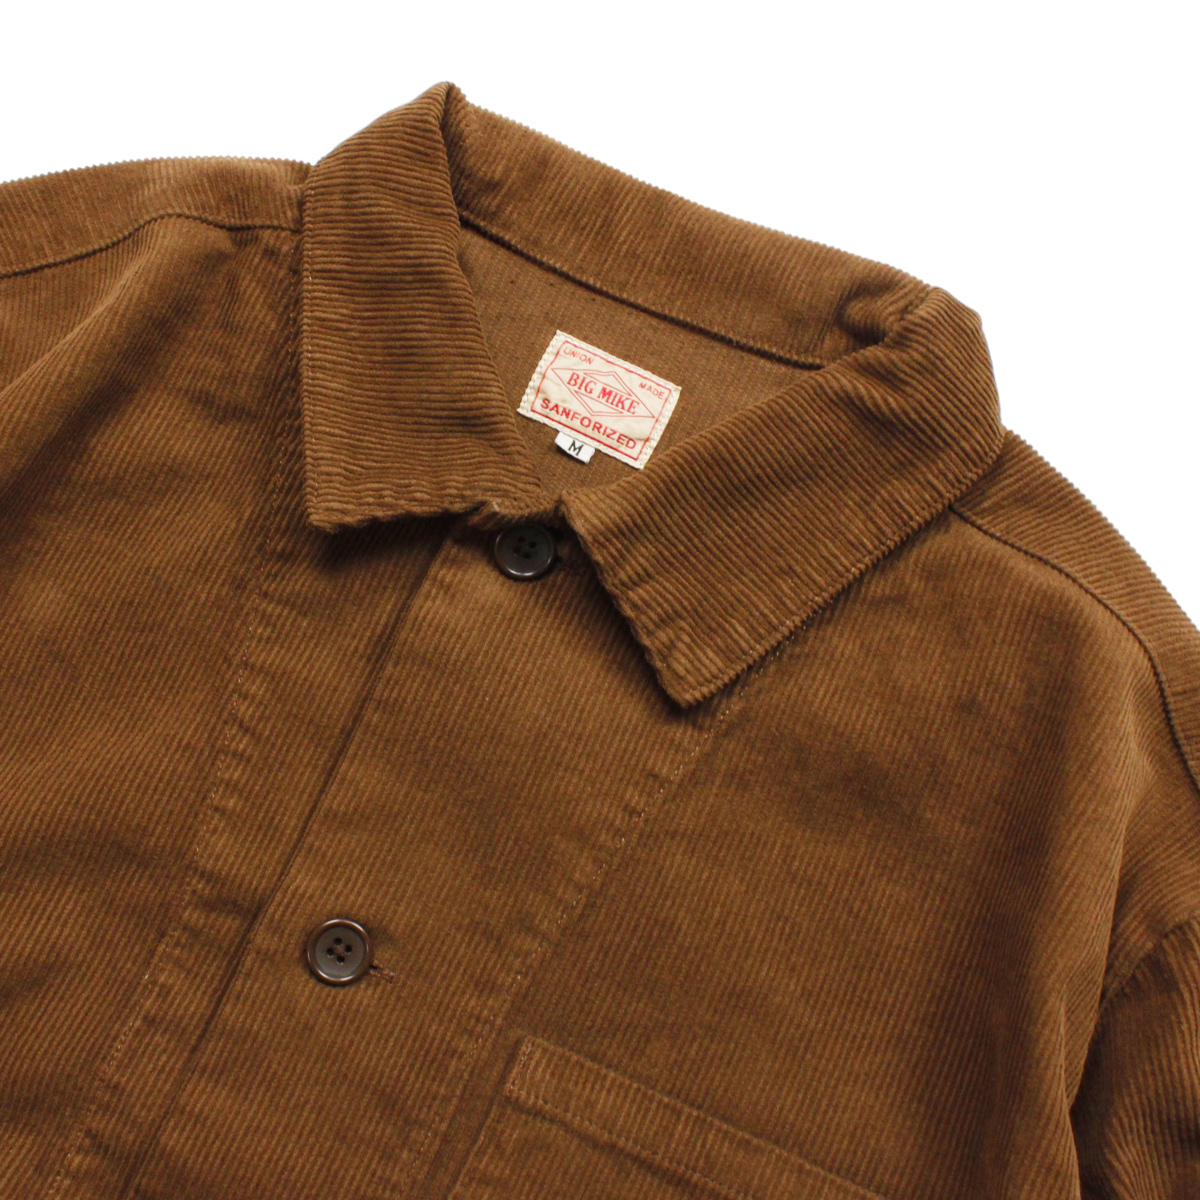 BIG MIKE ビッグマイク CORDUROY COVERALL